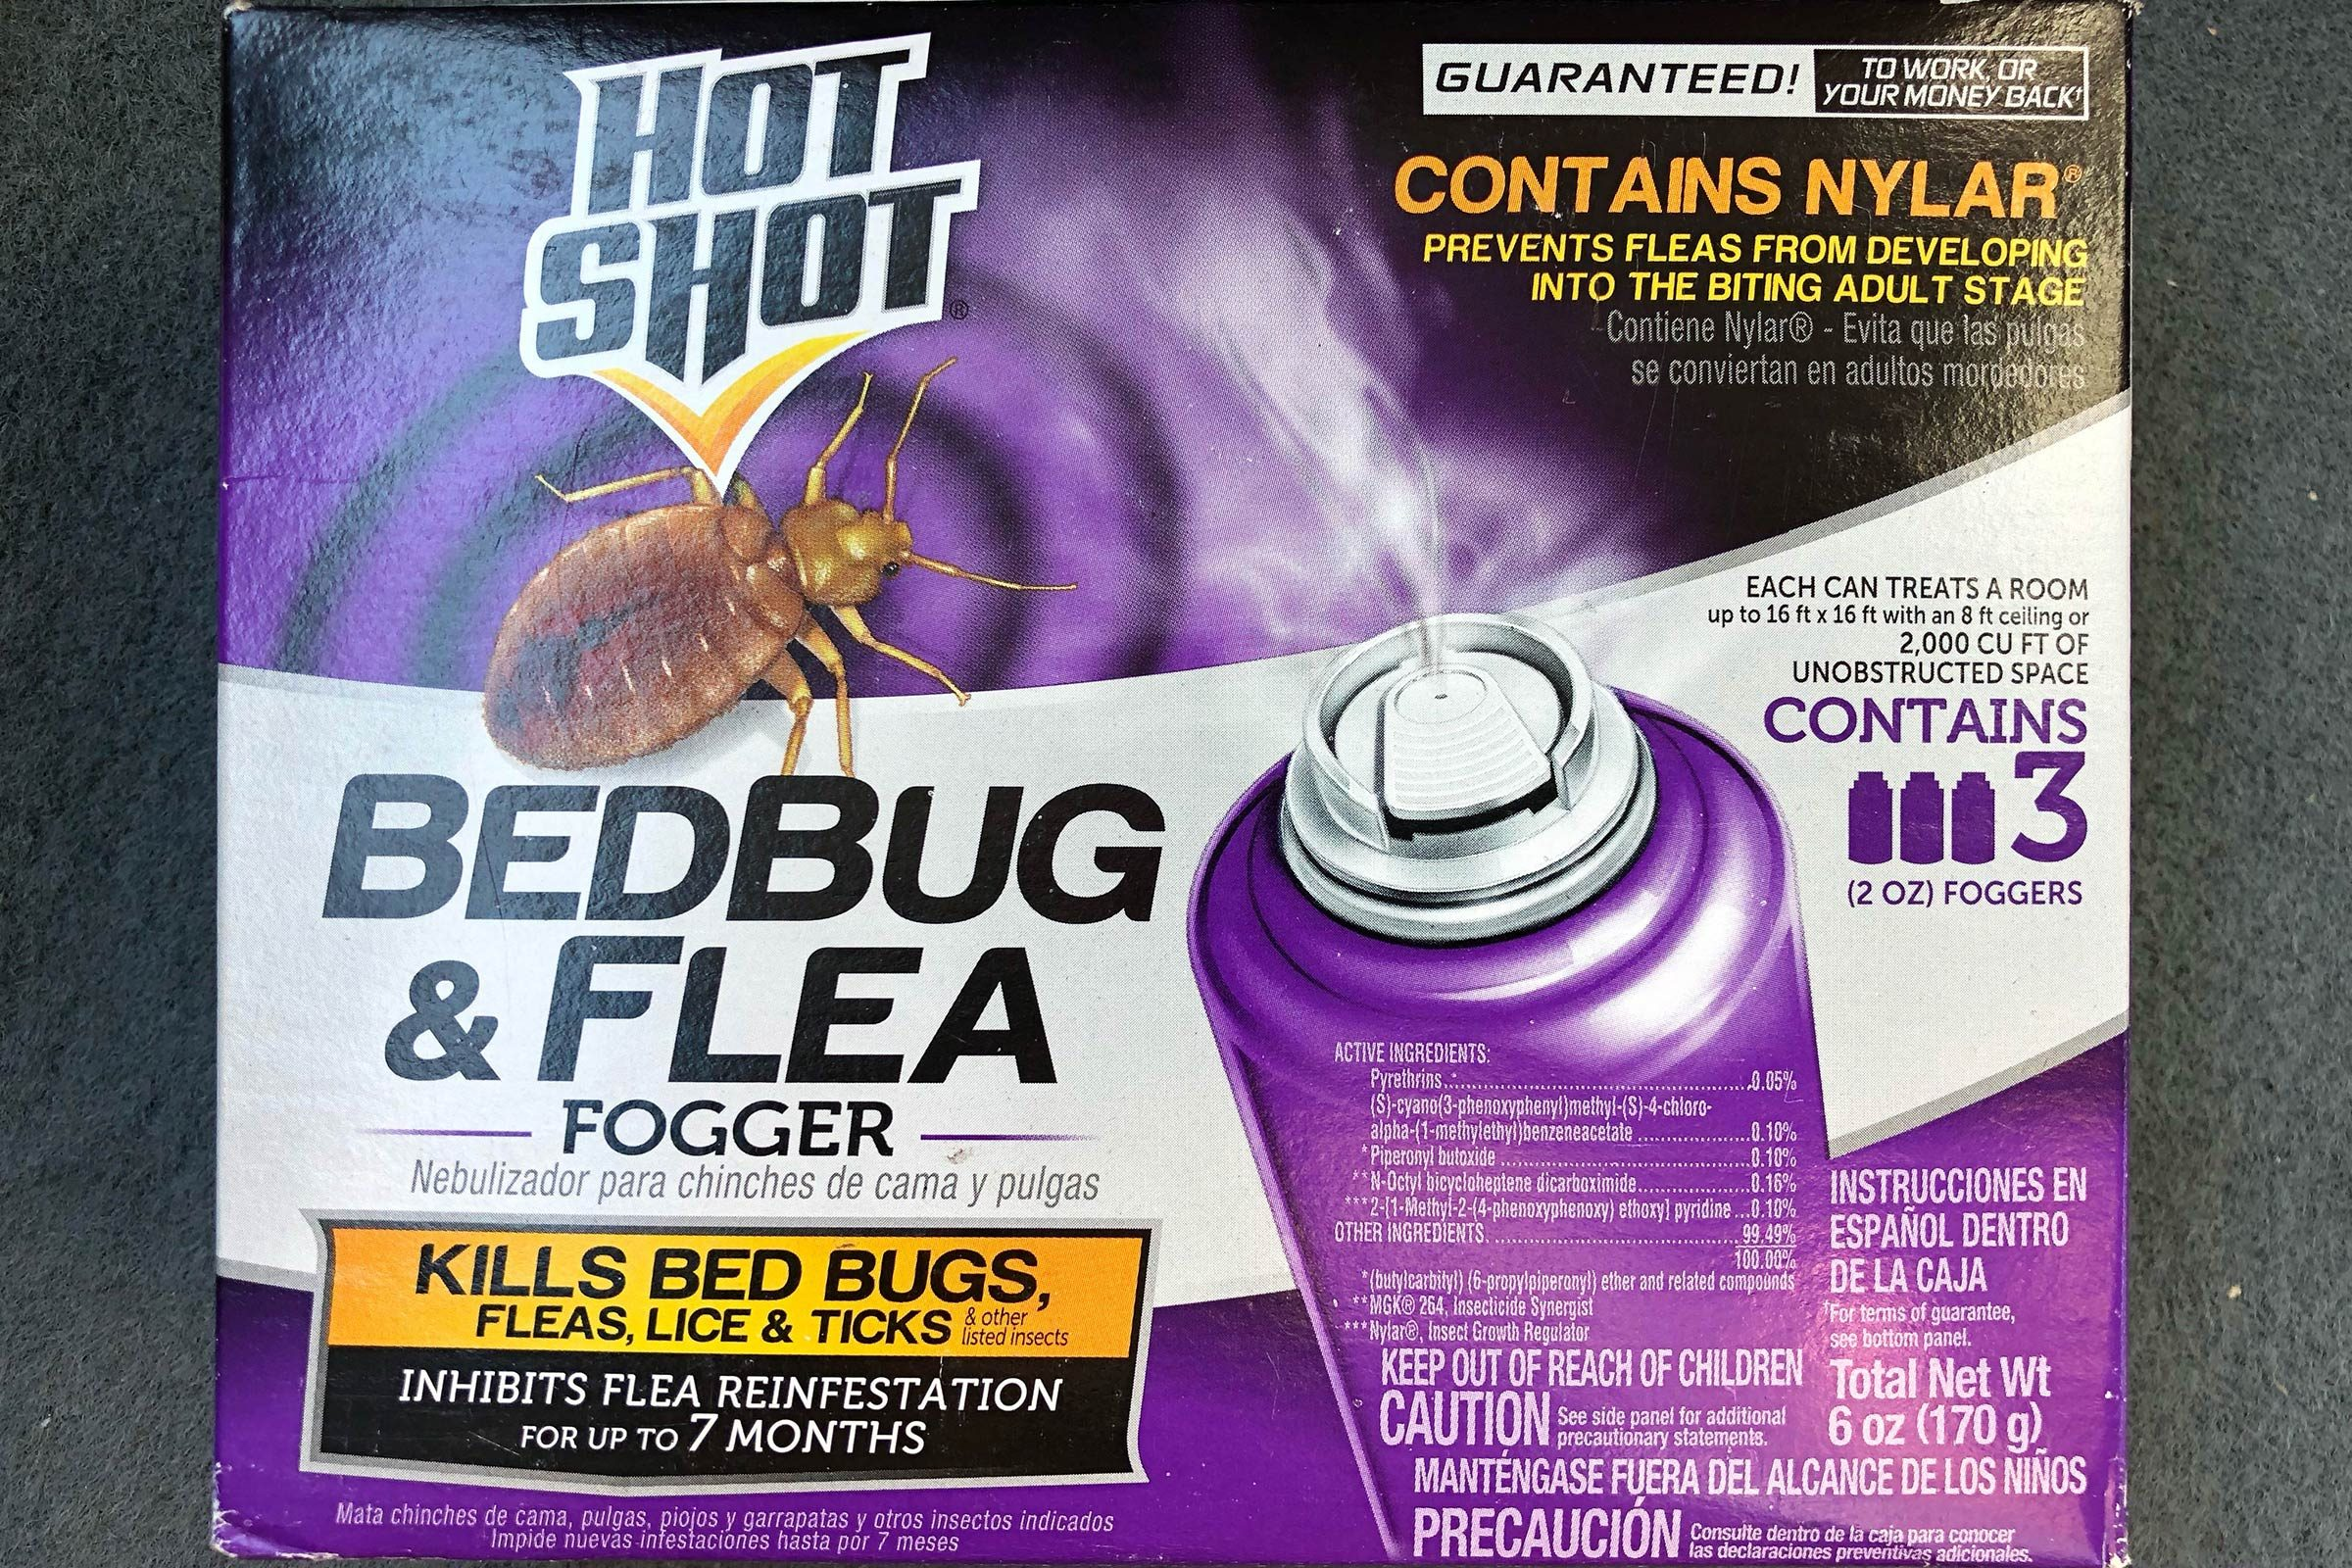 Why Bed Bug Sprays and Repellents Might Make Your Problem Worse